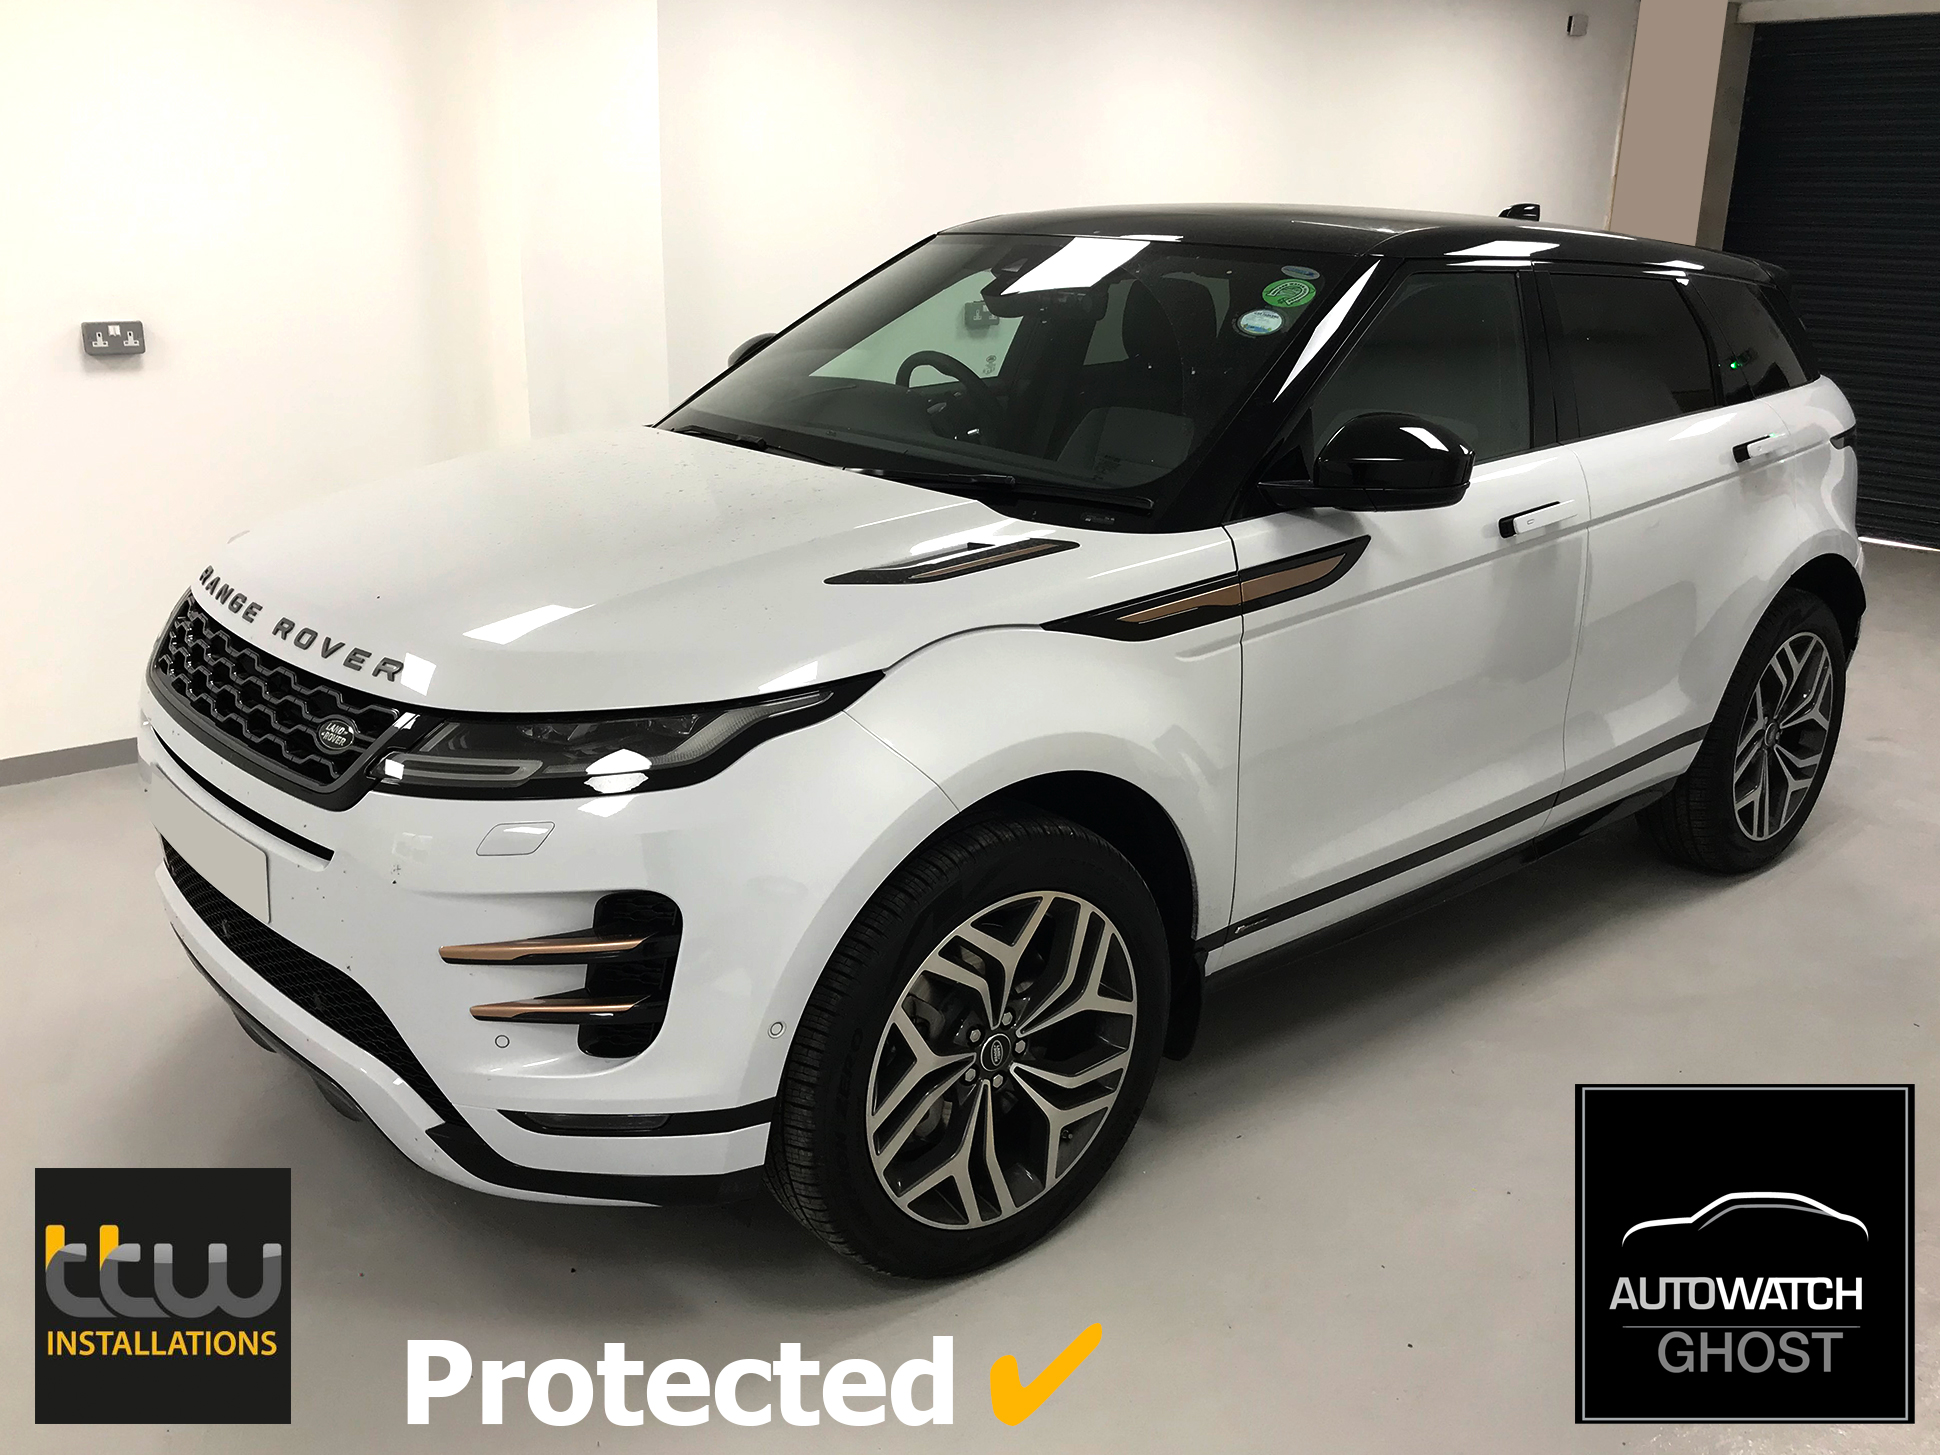 Autowatch Ghost Range Rover Specialists - Range Rover Evoque - Theft Security UK